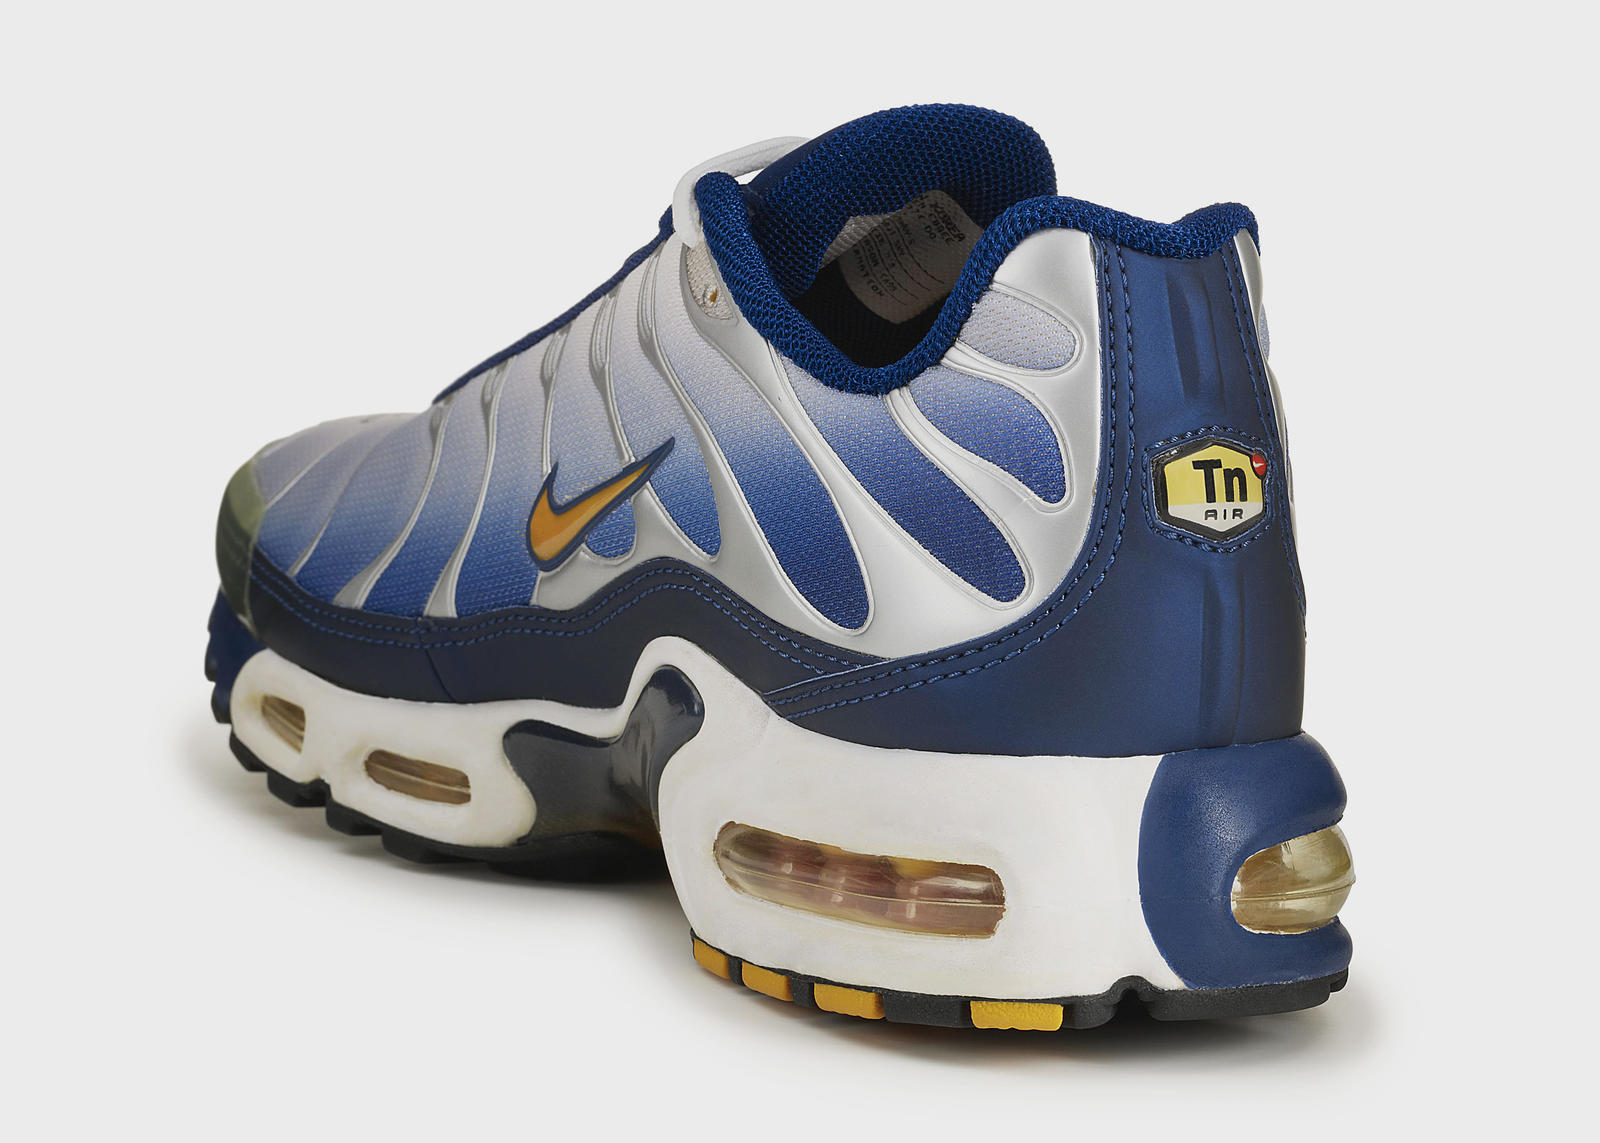 cartellone influenza Inibire  Nike Air Max Plus TN History - Nike News